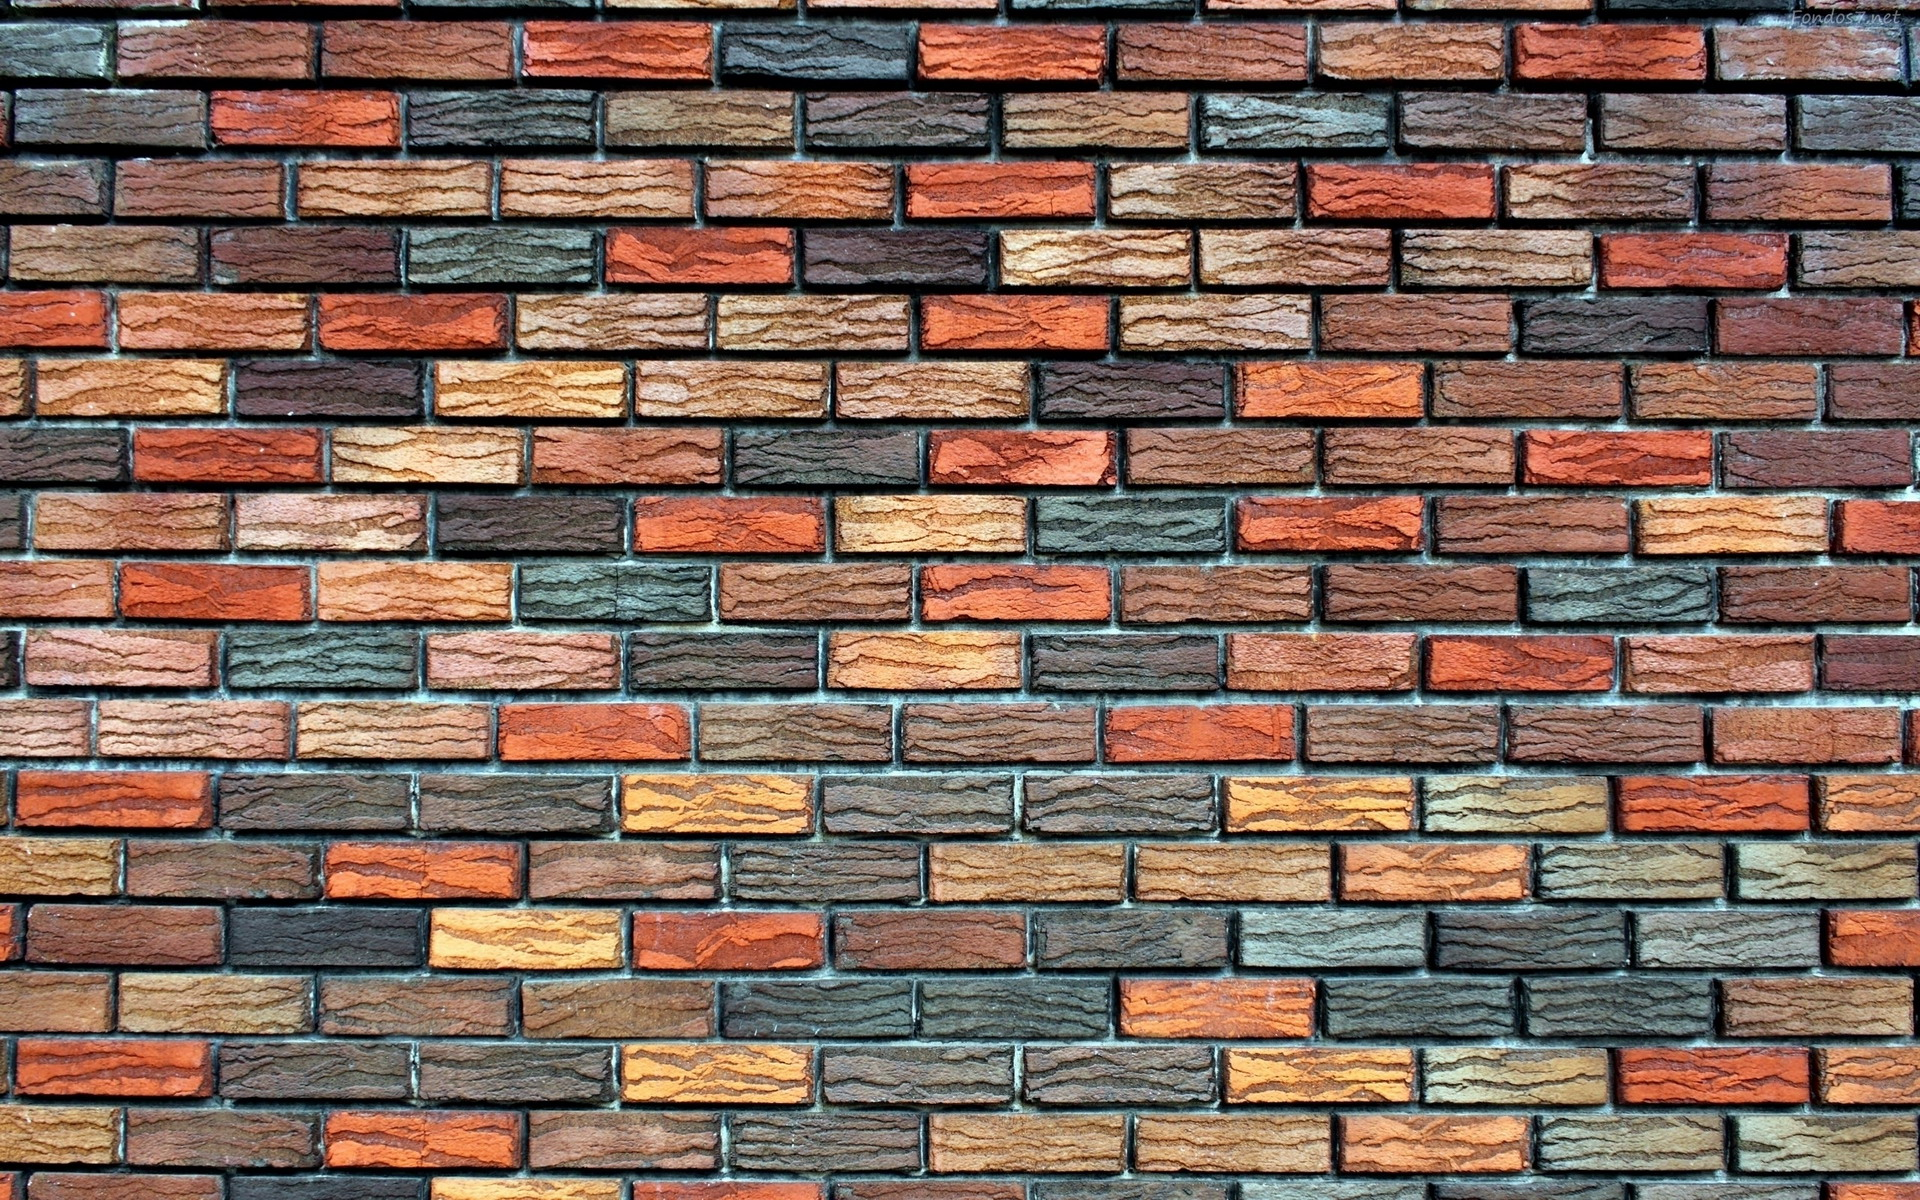 39 handpicked brick wallpapers for free download for D wall wallpaper